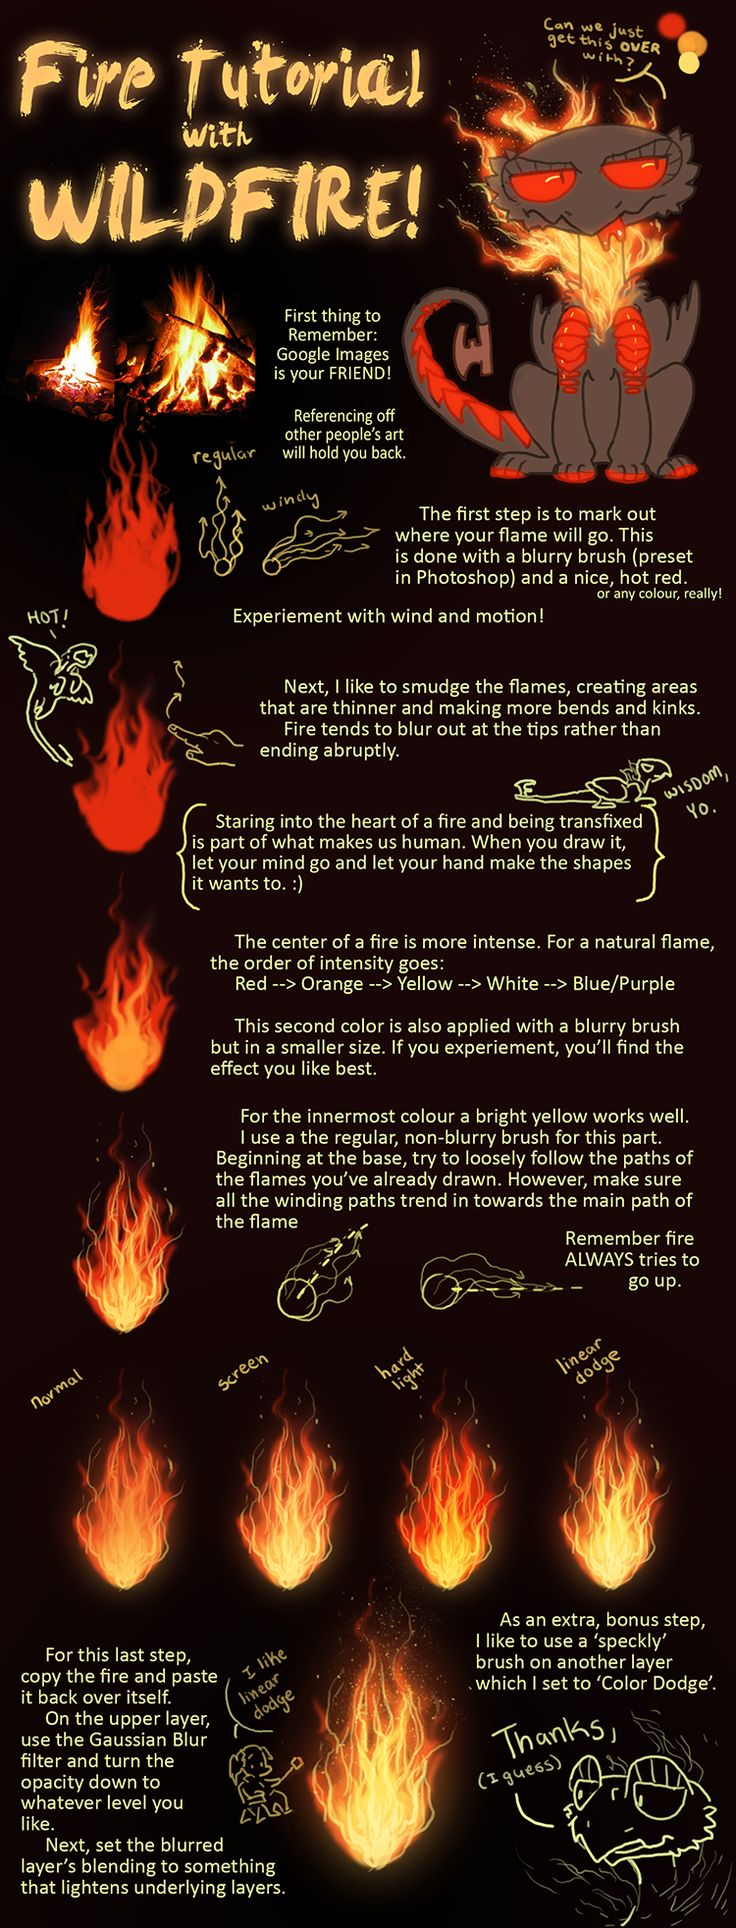 Fire Tutorial with Wildfire by FlightyFelon how to instructions | NOT OUR ART - Please click artwork for source | WRITING INSPIRATION for Dungeons and Dragons DND Pathfinder PFRPG Warhammer 40k Star Wars Shadowrun Call of Cthulhu and other d20 roleplaying fantasy science fiction scifi horror location equipment monster character game design | Create your own RPG Books w/ www.rpgbard.com